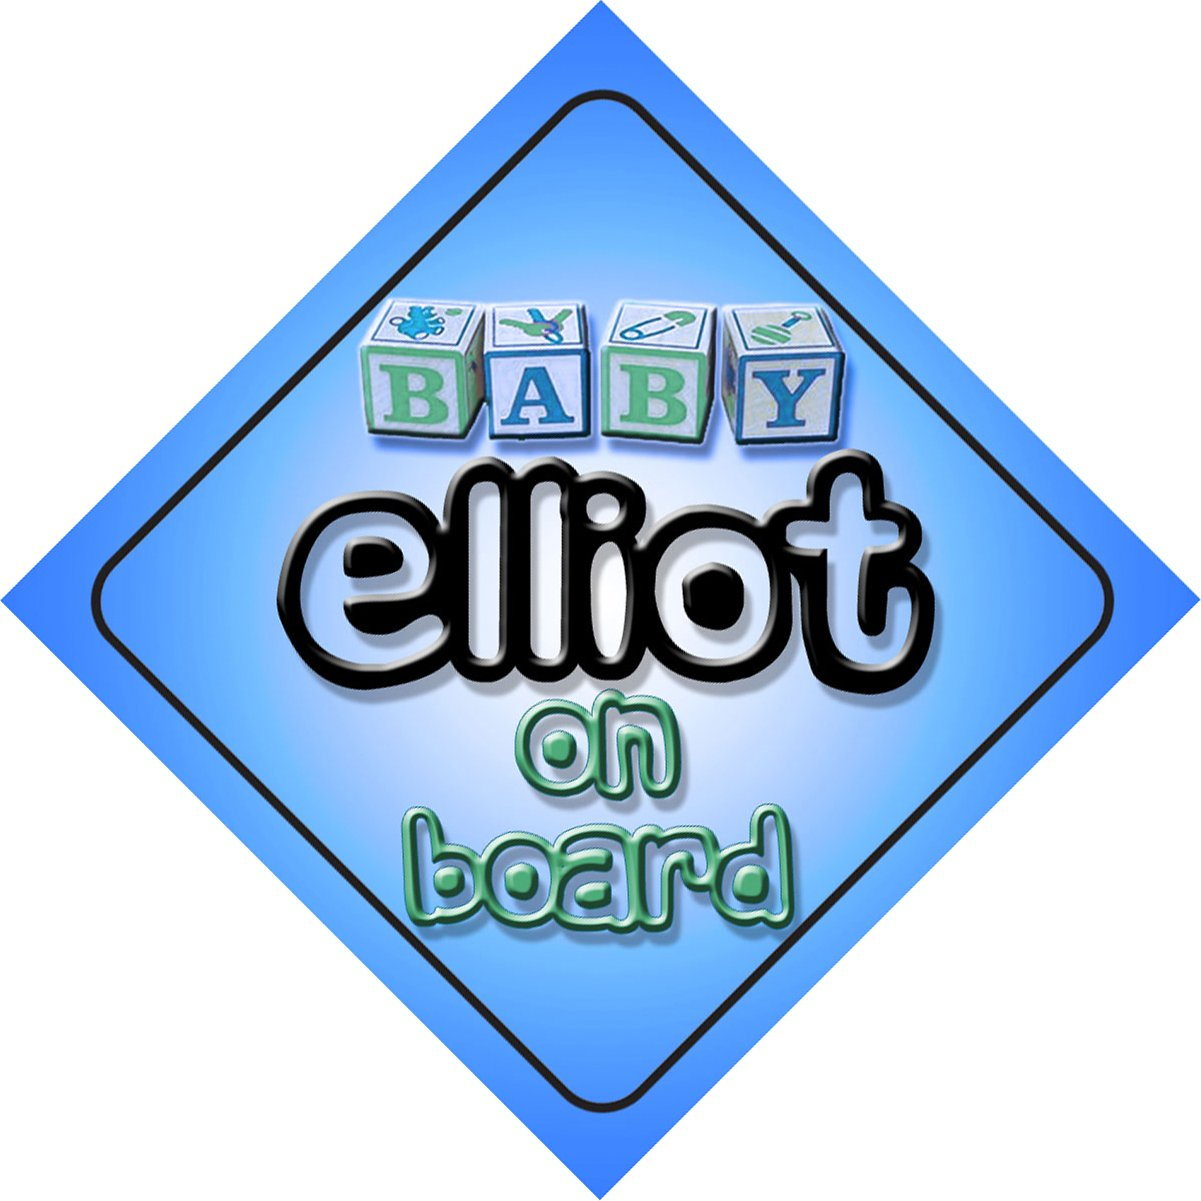 Baby Boy Elliot on board novelty car sign gift / present for new child / newborn baby Quality Goods Ltd